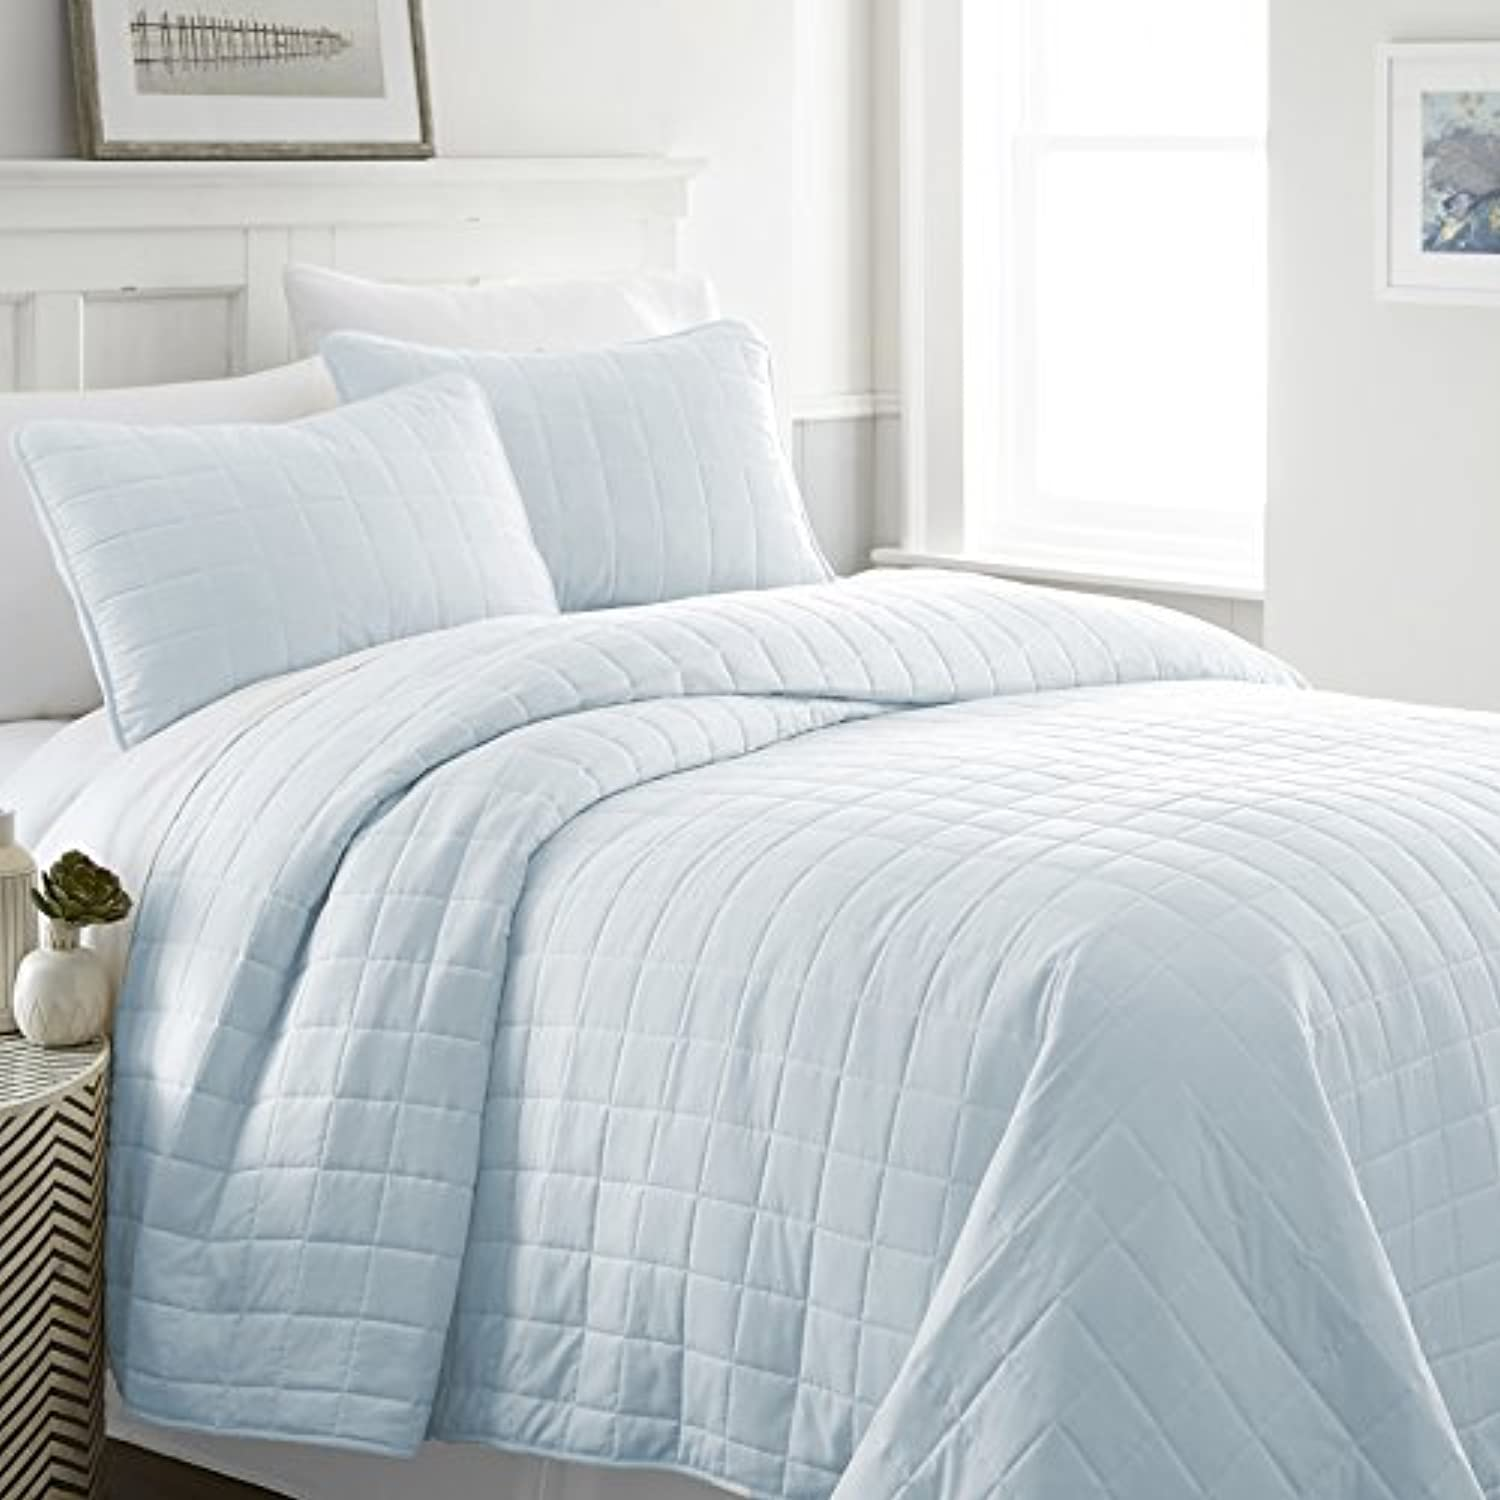 Simply Soft Quilted Coverlet Set Square Patterned , Queen Full, Pale bluee